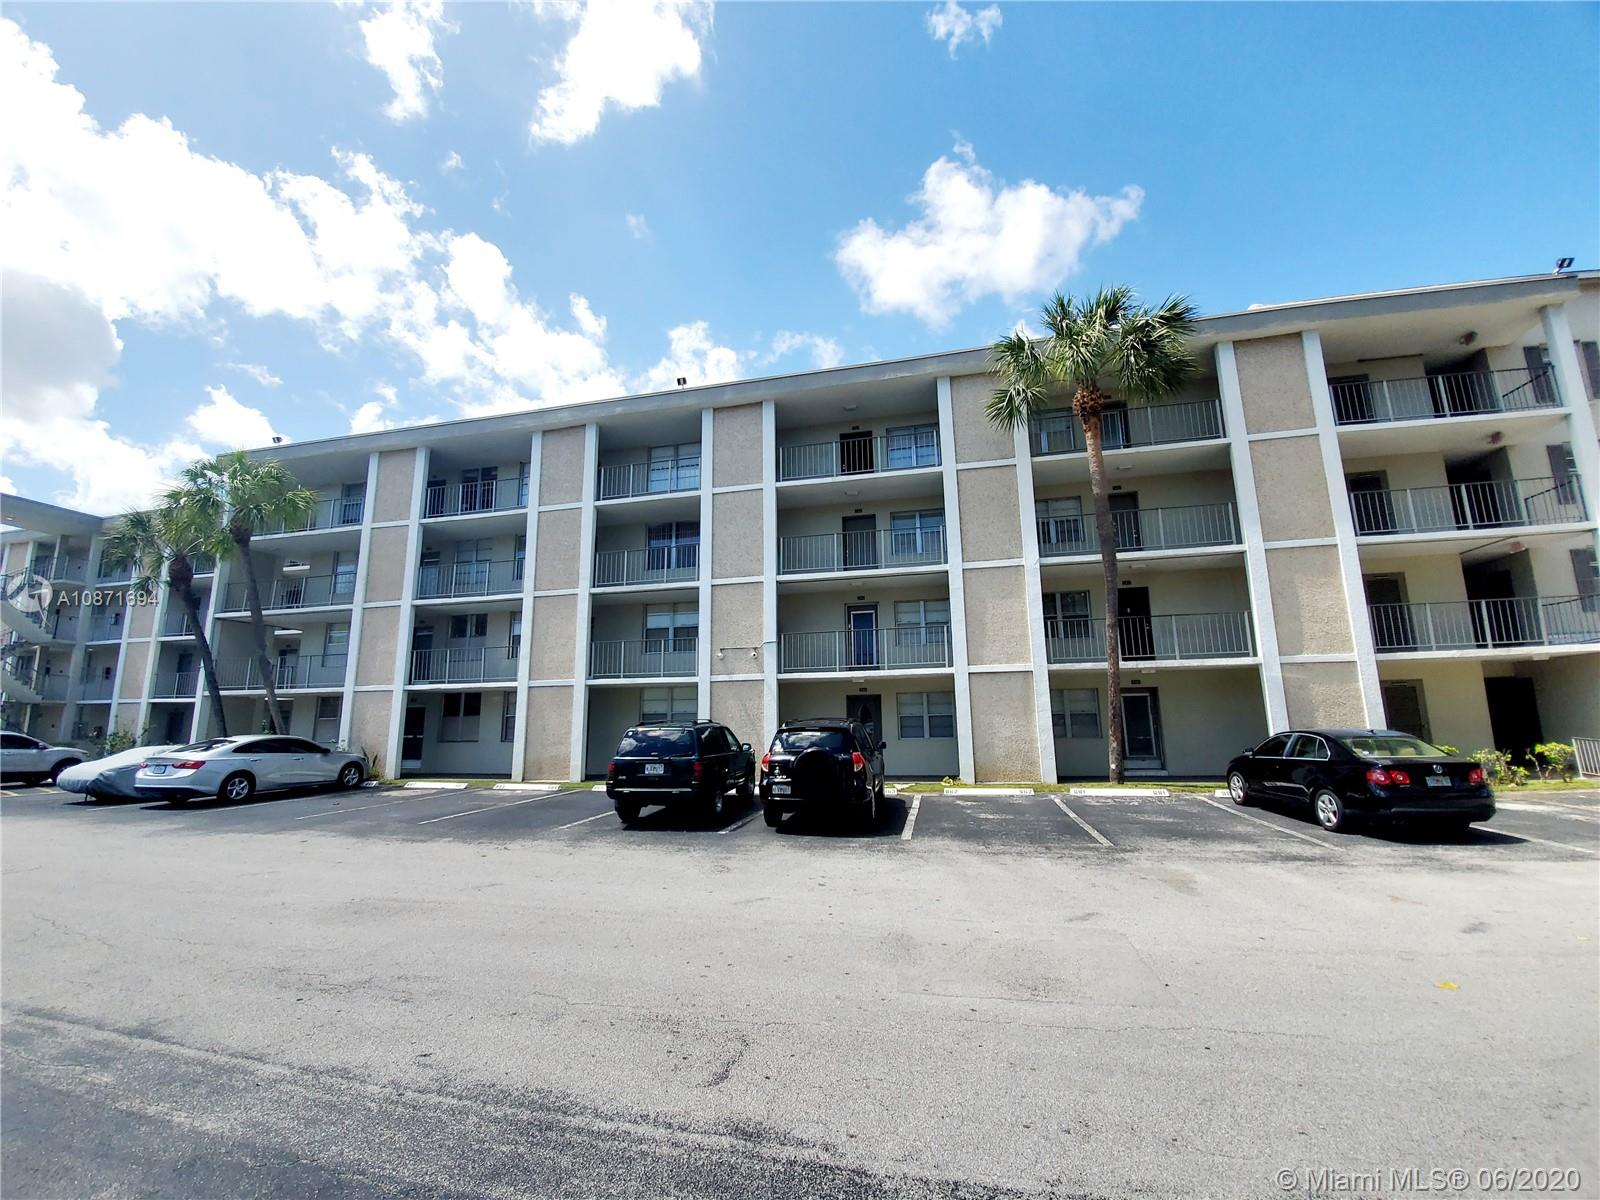 Handyman special: One bedroom, one bath second floor unit located in active 55+ Cypress Chase Condominium community for sale. I deal for investors looking to repair and remodel. Community amenities includes pool, clubhouse, shuffle board and much more. Price to sell.